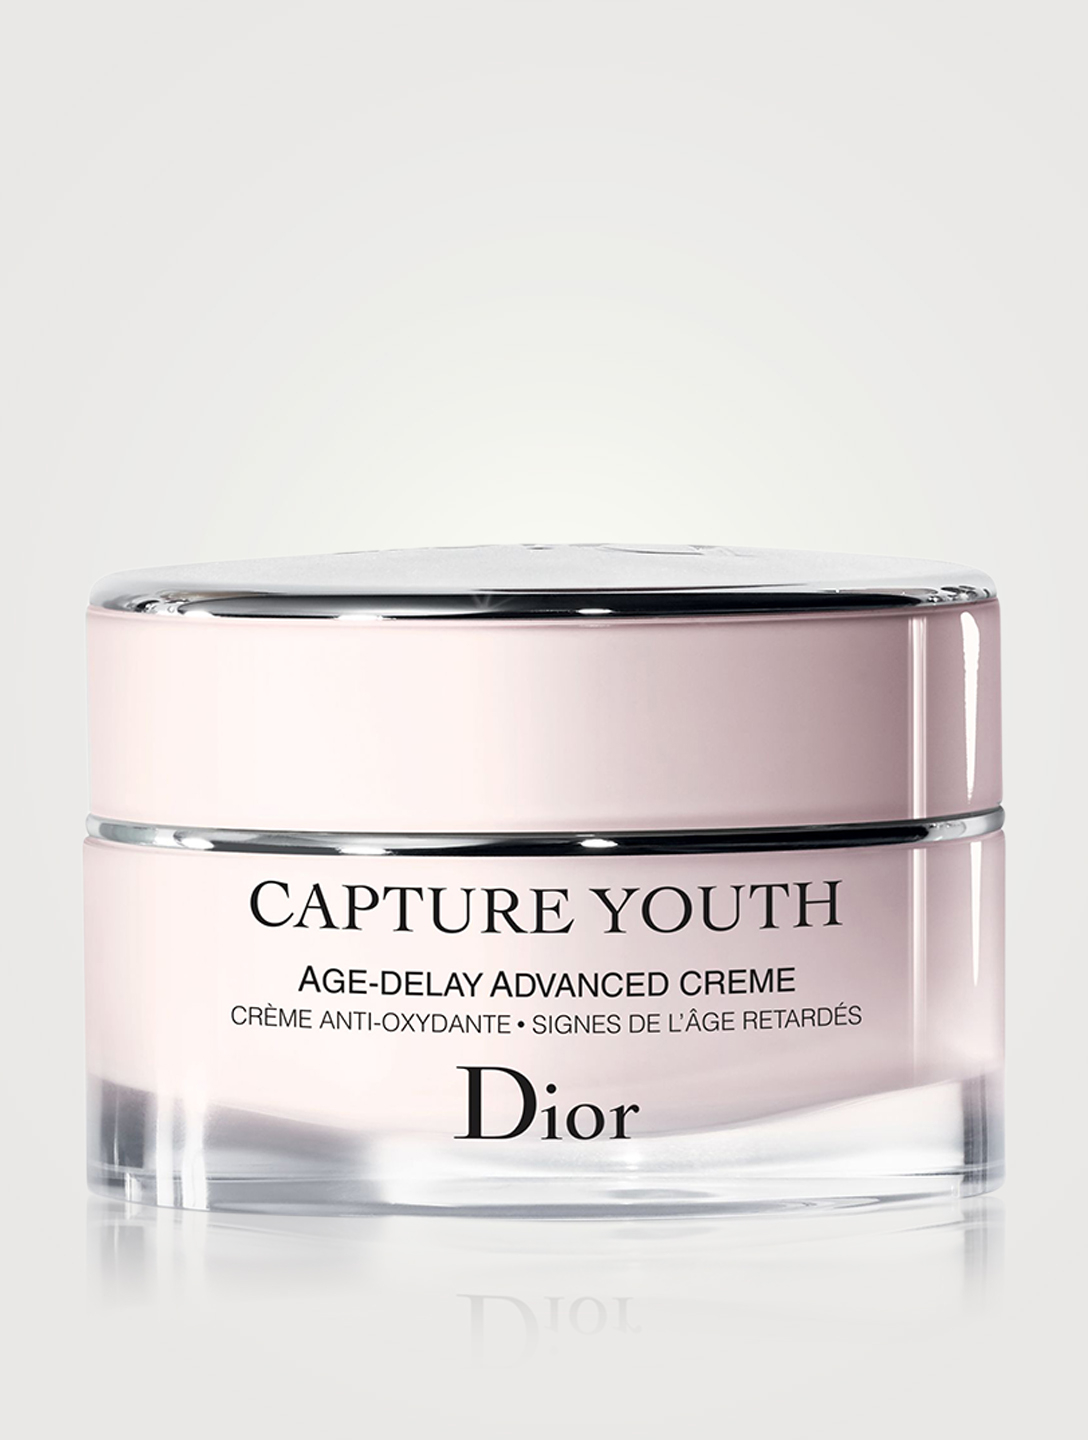 DIOR Capture Youth Age-Delay Advanced Creme Beauty